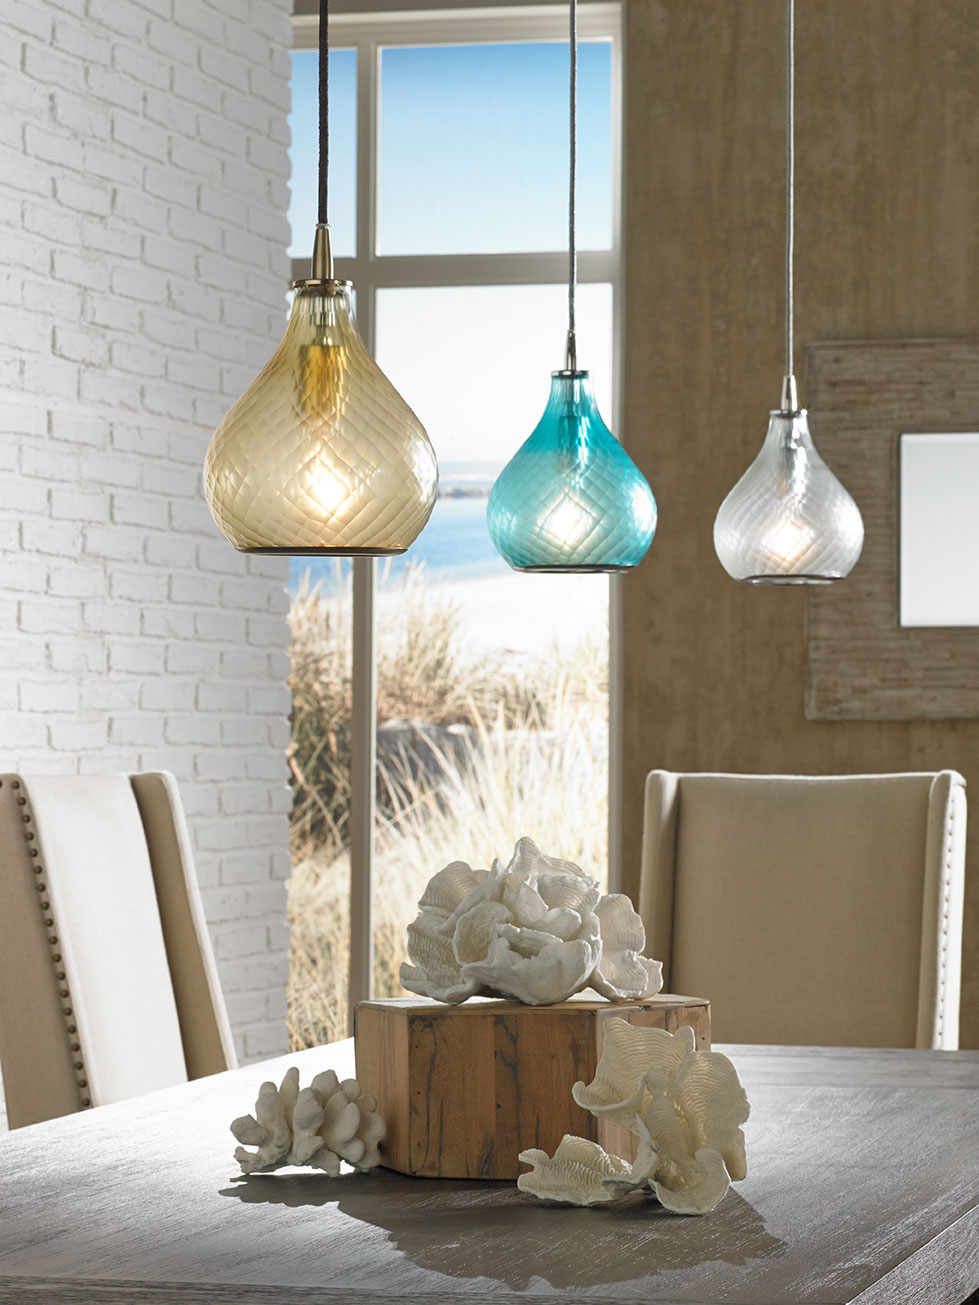 Superior Lamps Plus Previews Exclusive Mini Pendant Light Fixtures From The Jamie  Young Company At The High Point Spring Market Images